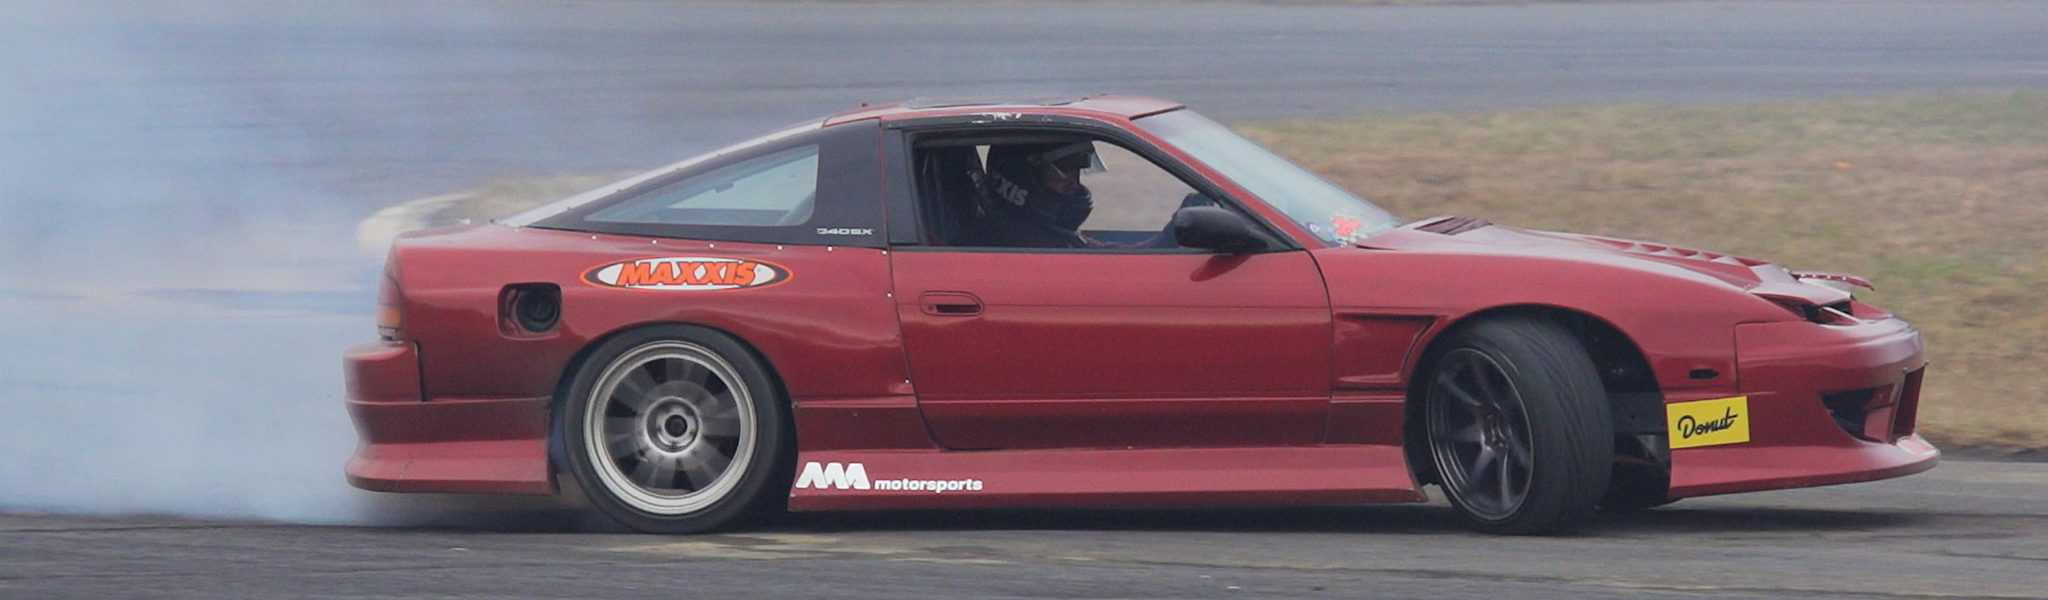 Drifting with Angerman & Maxxis tires